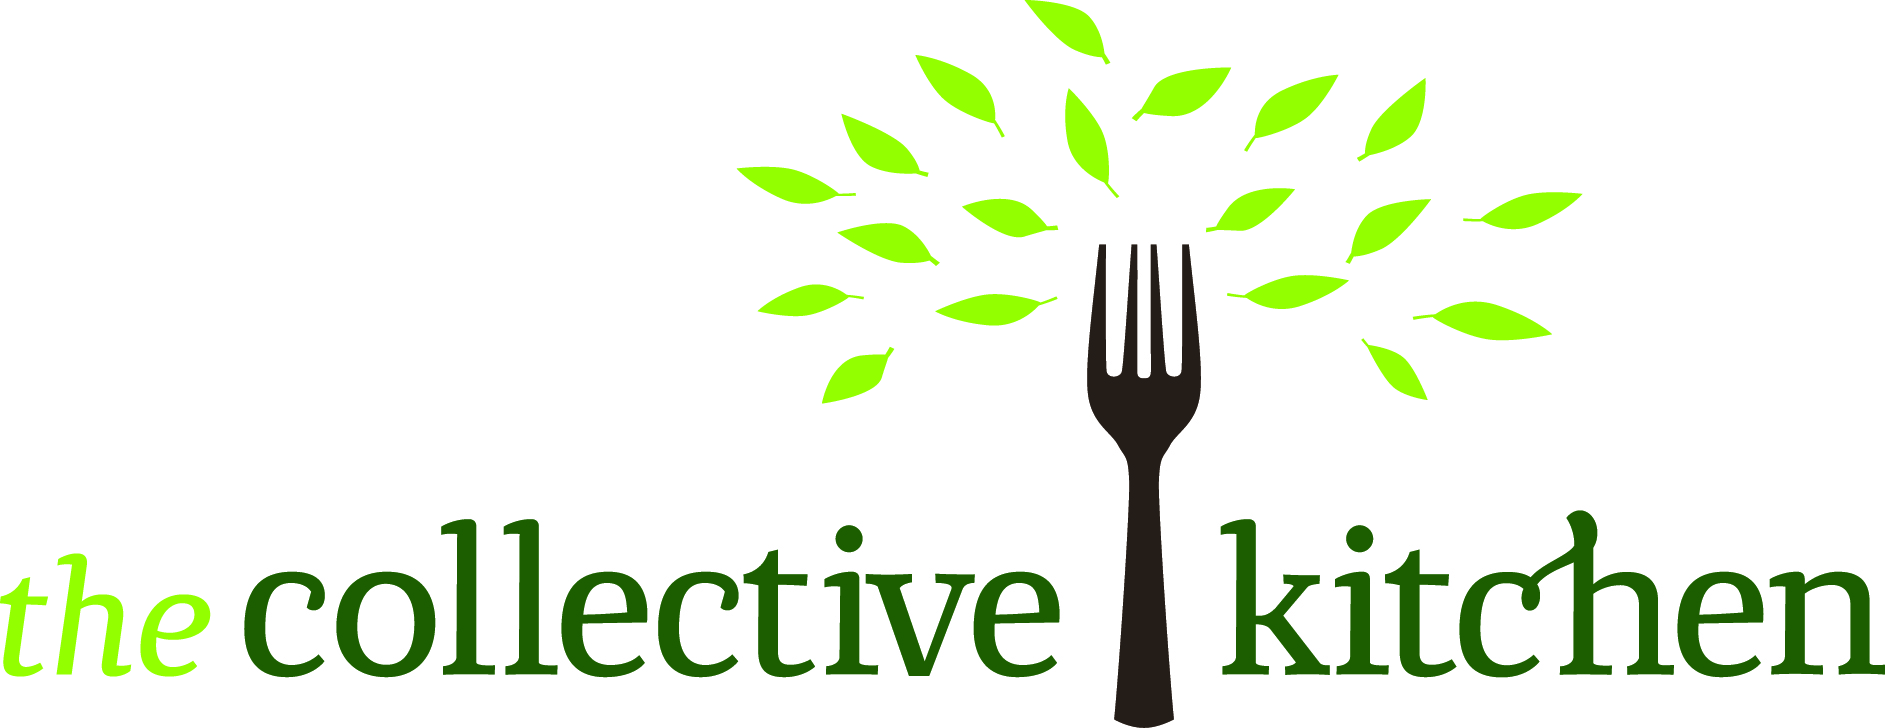 The Collective Kitchen logo.jpg